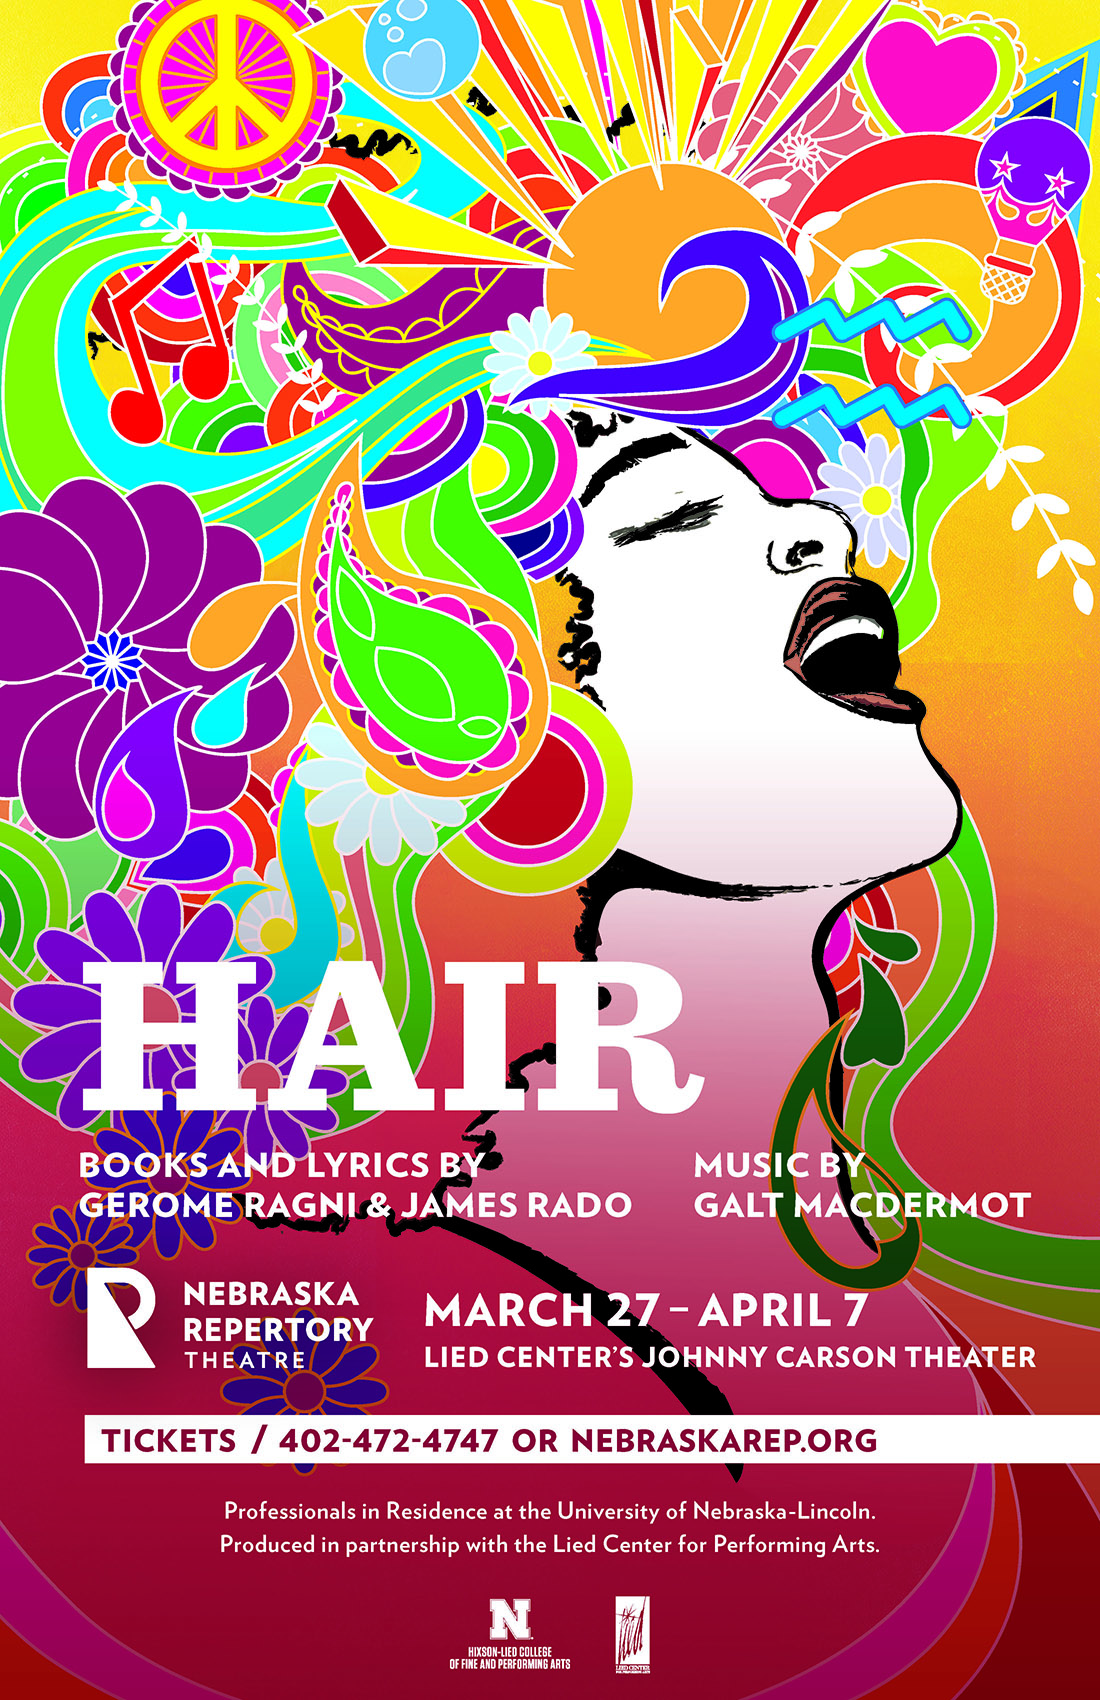 A poster featuring a woman who appears to be singing exultantly; her face is framed in brightly colored shapes, flowers and music notes. The headline of the poster reads 'Hair'.